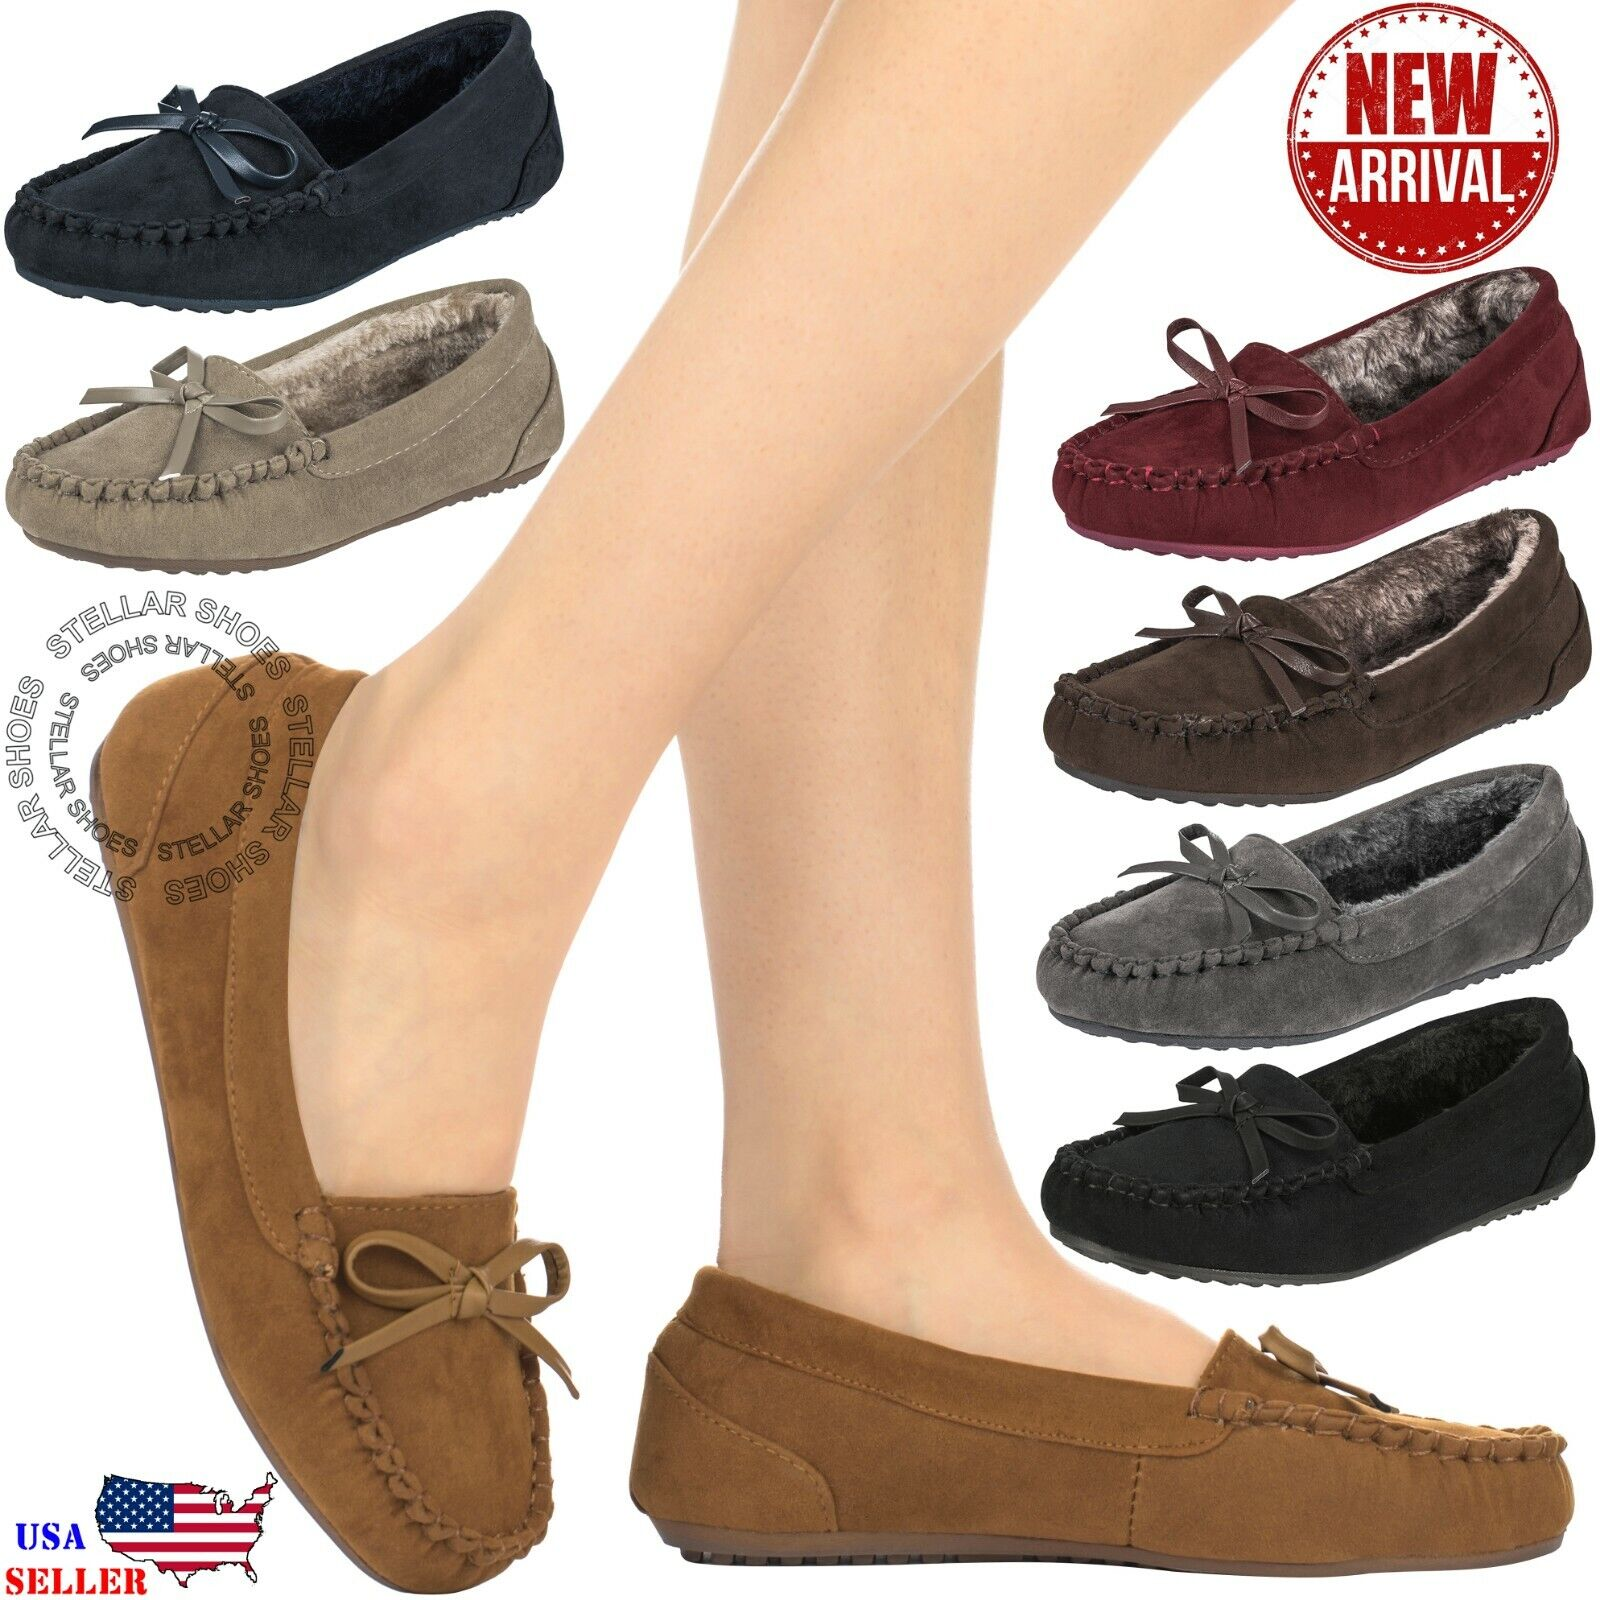 CLOVERLY Women's Moccasin Faux Fur Suede Slippers Moccasins Comfortable Slippers